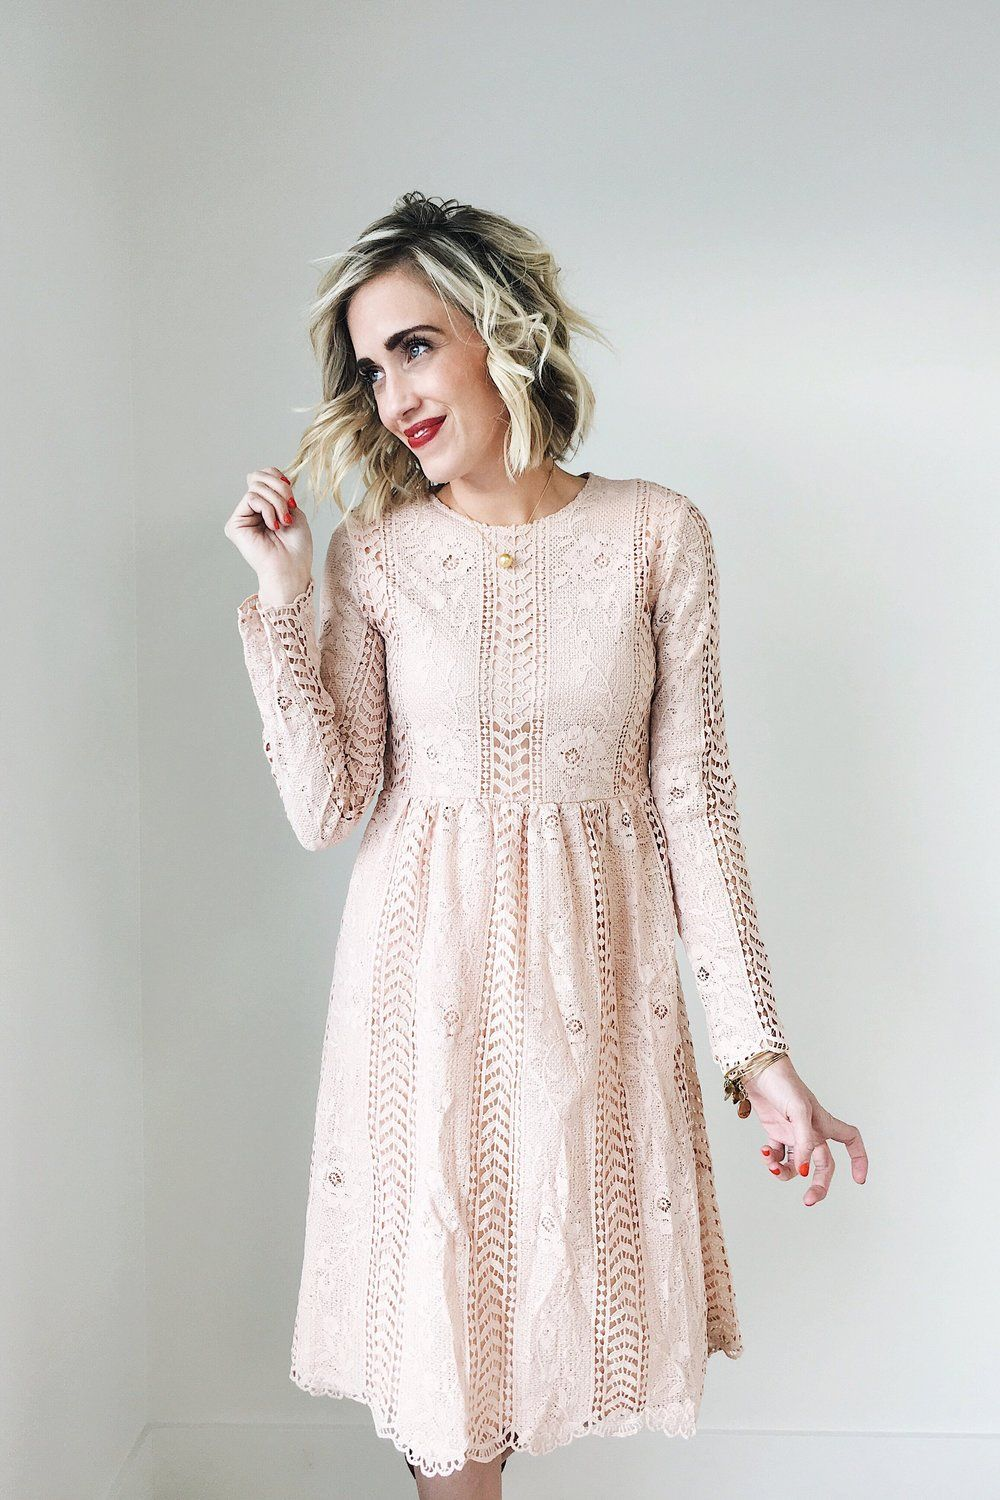 3b783b56af06 Blush Lace Midi Dress Floral Lace Detailing Long Sleeve Keyhole Back Hidden  Seam Zipper Under Left Arm Fully Lined Bodice + Skirt Also Available in  Black ...